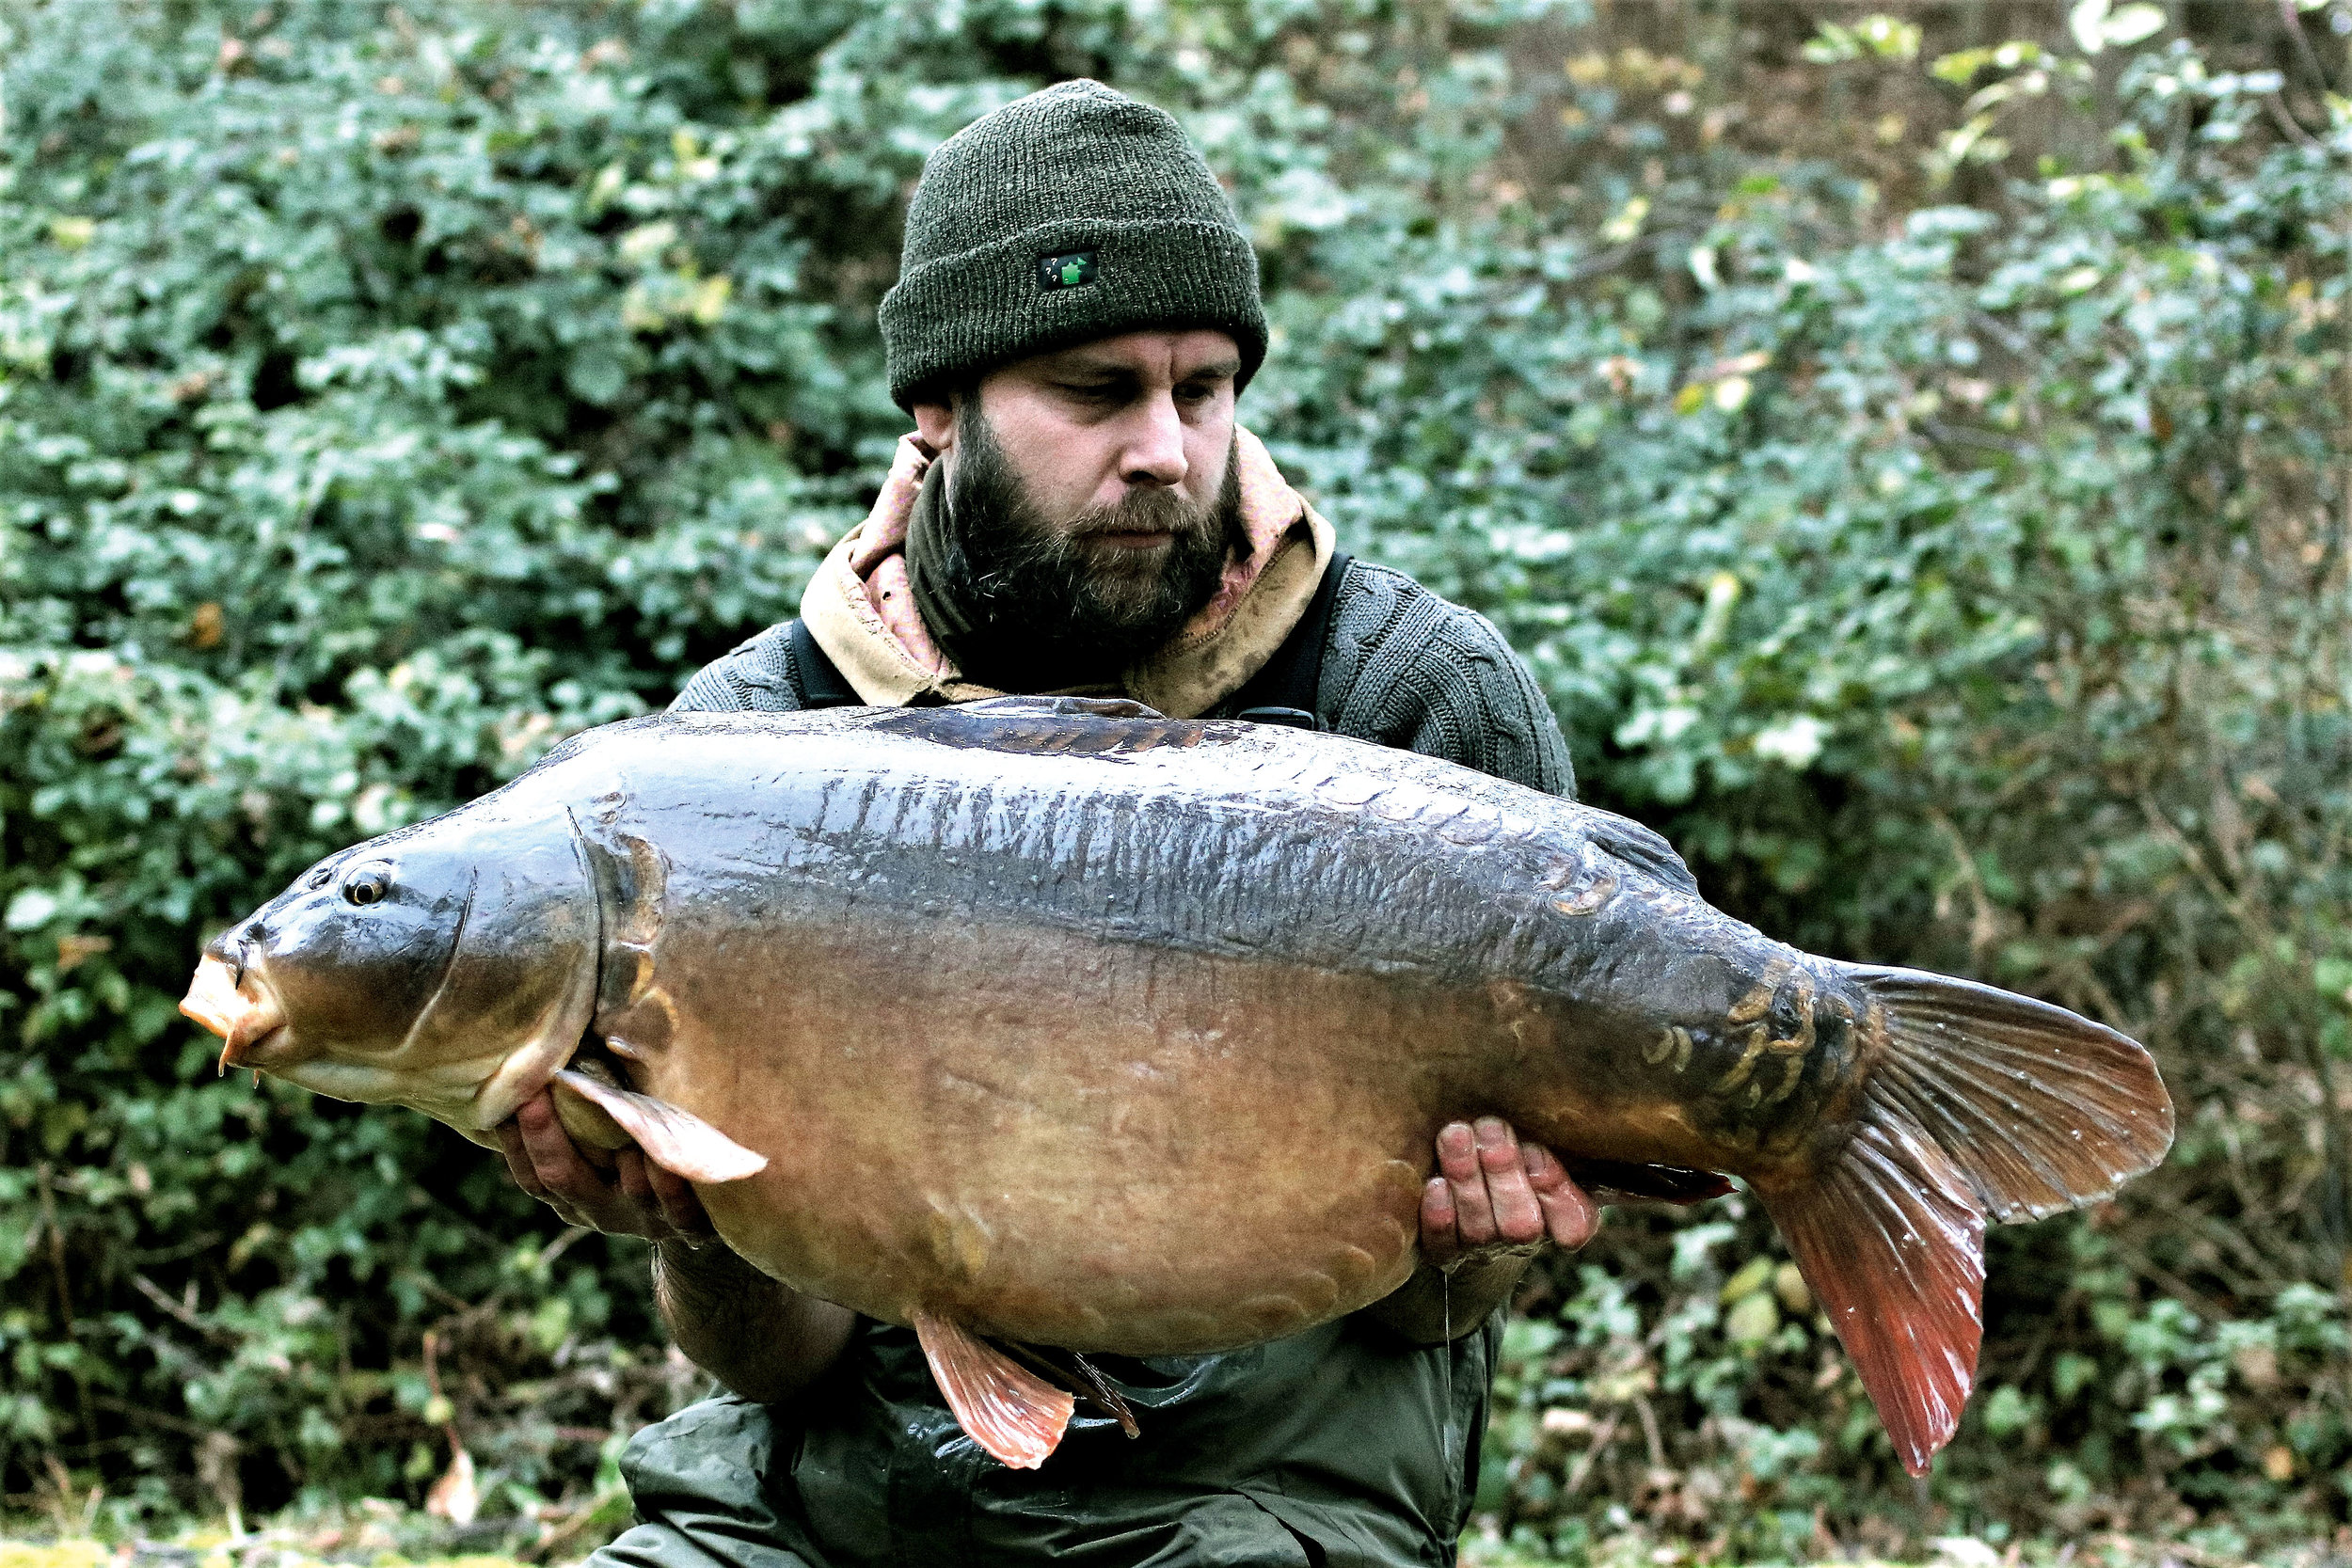 It wasn't time to call it a day just yet... Bromfield's at 44lb